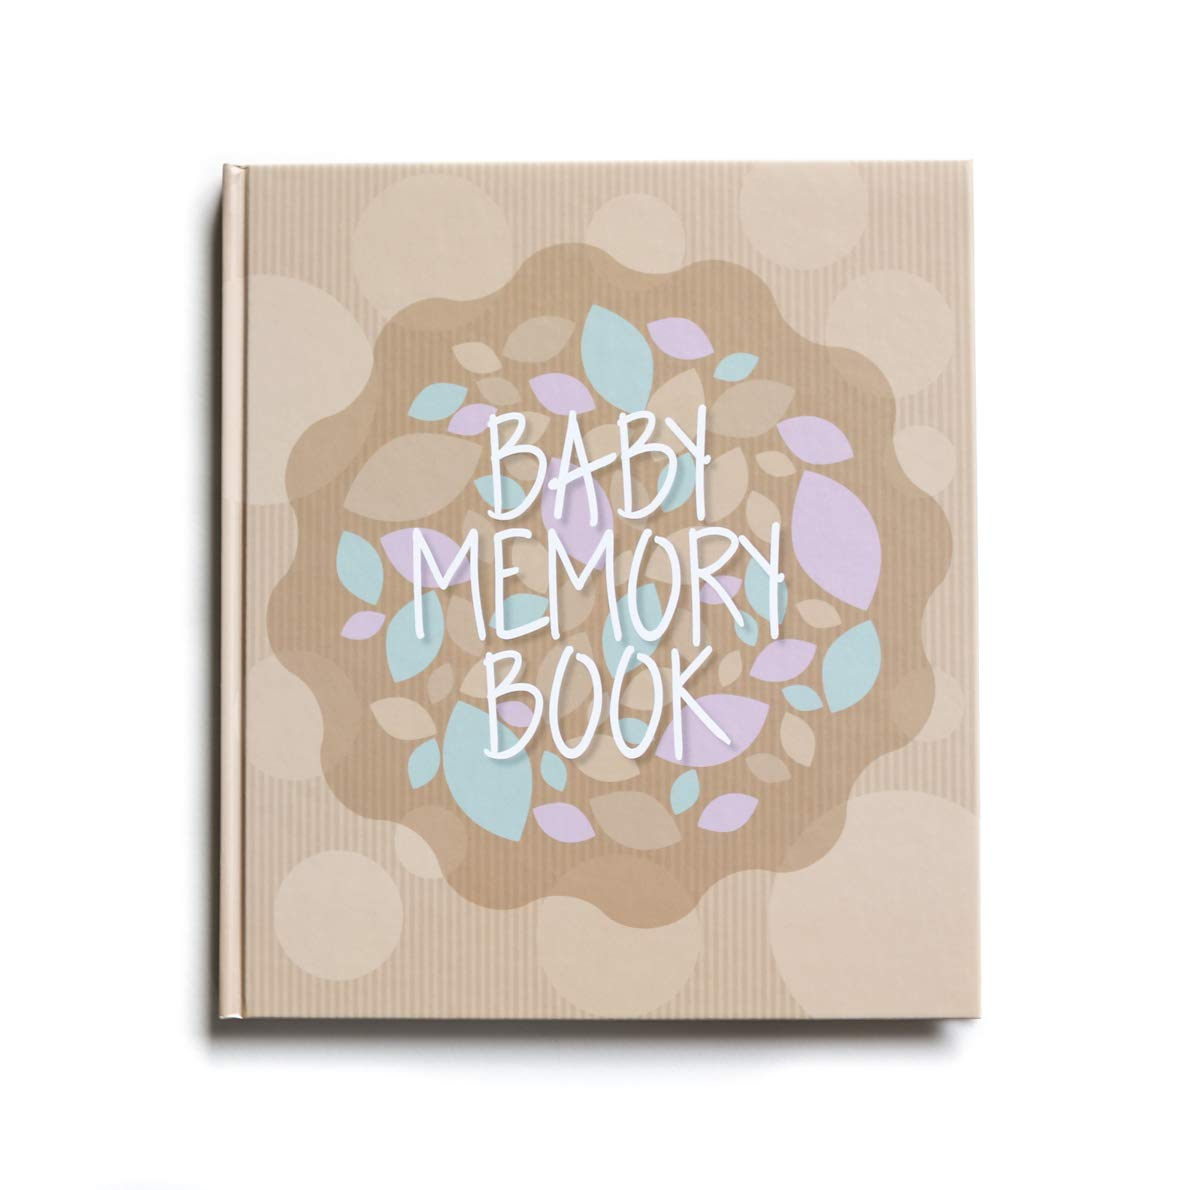 Baby Memory Book And Keepsake For Baby's First Year - A Scrapbook / Photo Album / Journal For Both Boy And Girl - White Pages Lucky Baby Moments AMZ2